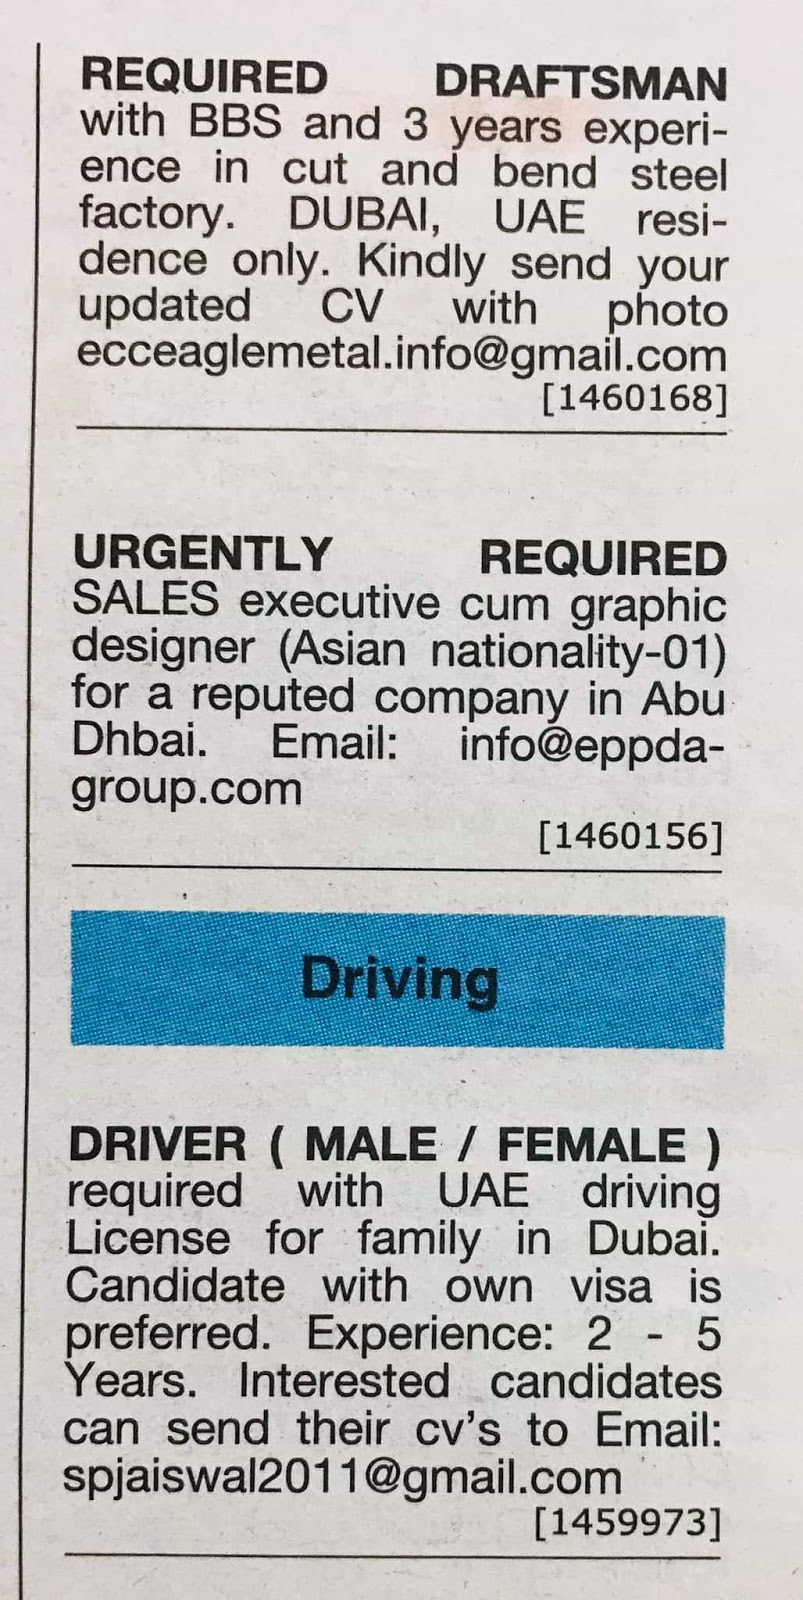 Required Draftsman, Sales Executive & Driver Male/Female for UAE